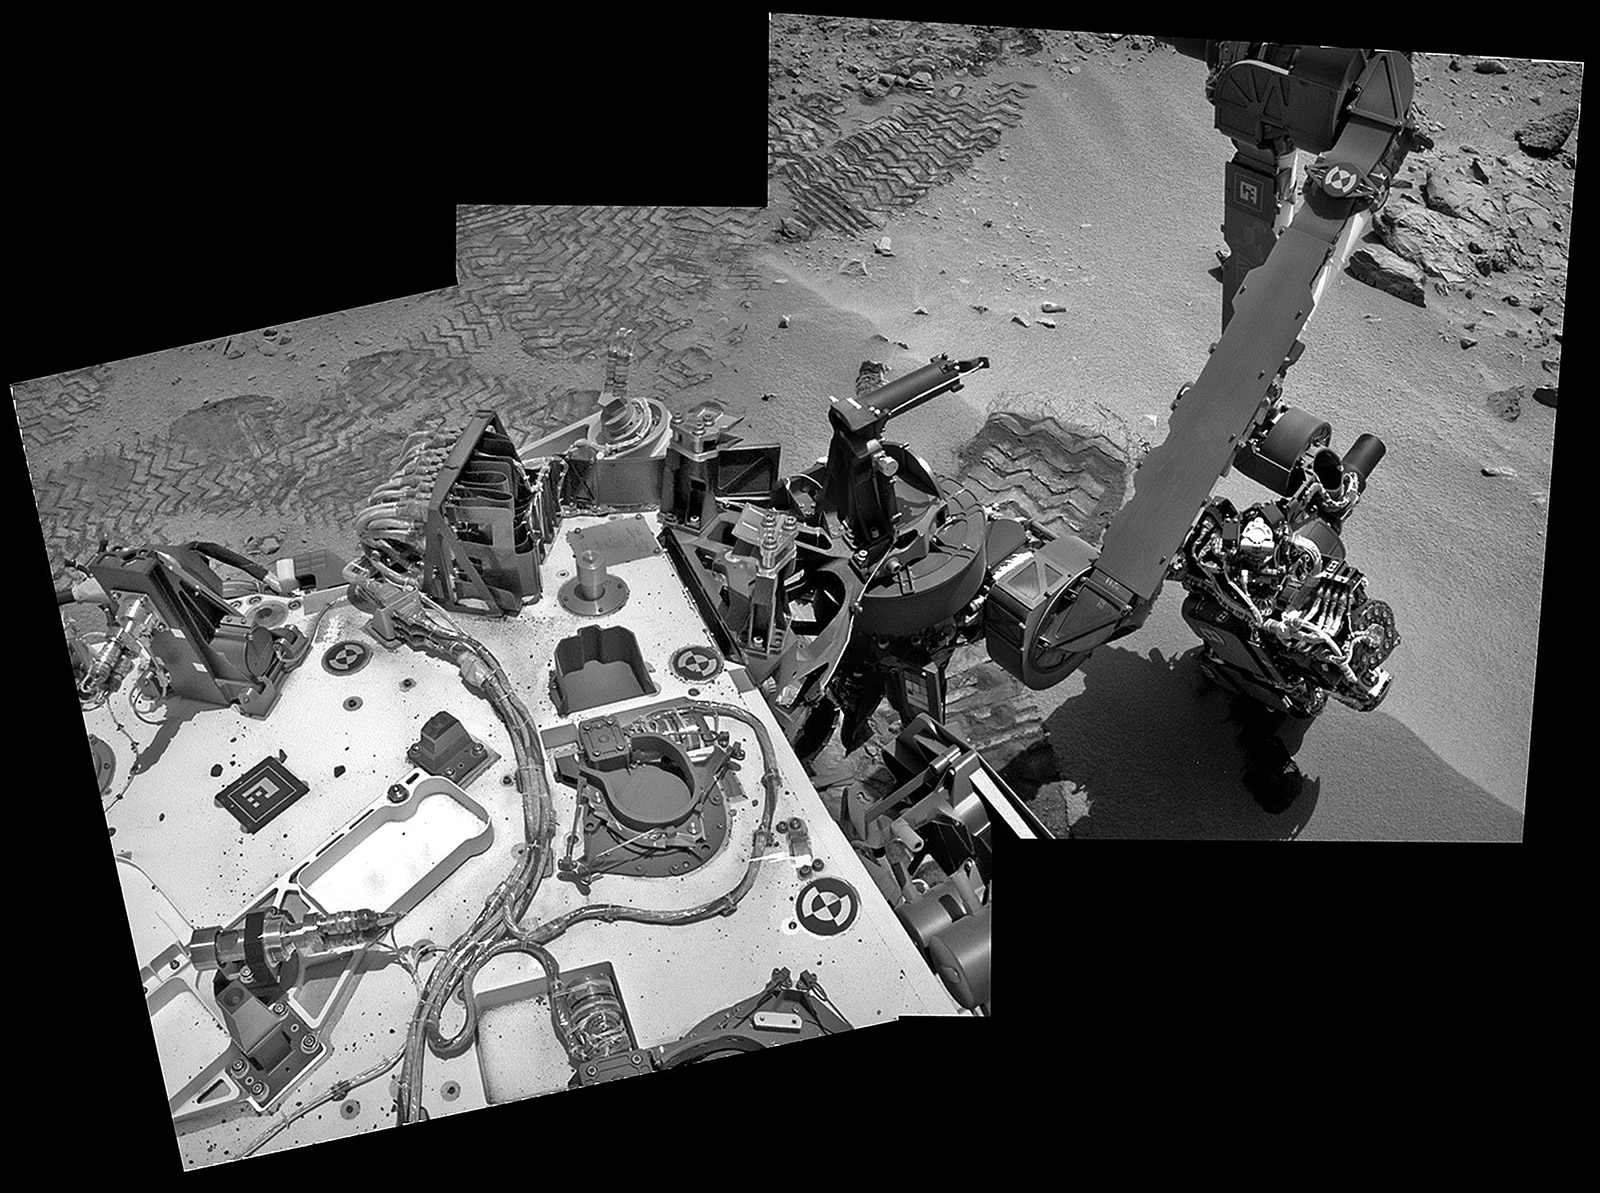 Curiosity scoops up Martian soil sample on Sol 66 (Oct 12. 2012). Navcam image mosaic shows the robotic arm at work during scooping operations. Curiosity later delivered the first soil sample to the circular CheMin sample inlet at the center on the rover deck. Credit: NASA/JPL-Caltech/Ken Kremer/Marco Di Lorenzo